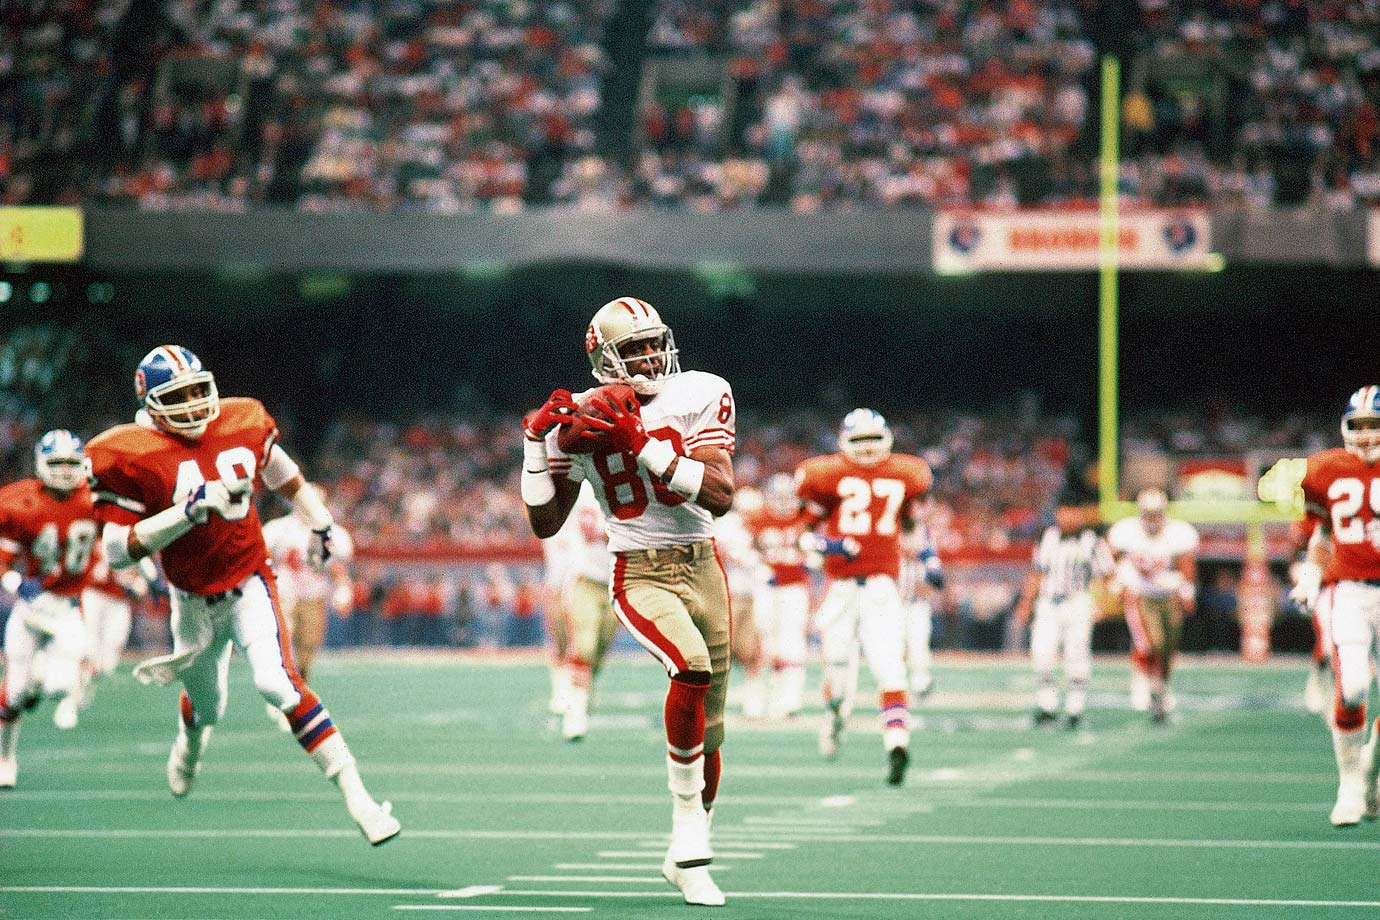 If one team epitomized the era of bad Super Bowl games, the Broncos were it. And if one game was the worst of the bunch, this was it. Wide receiver Jerry Rice ran free in Denver's secondary as the 49ers did virtually anything they wanted against Wade Phillips' defense. The game set records for most points scored and largest margin of victory.